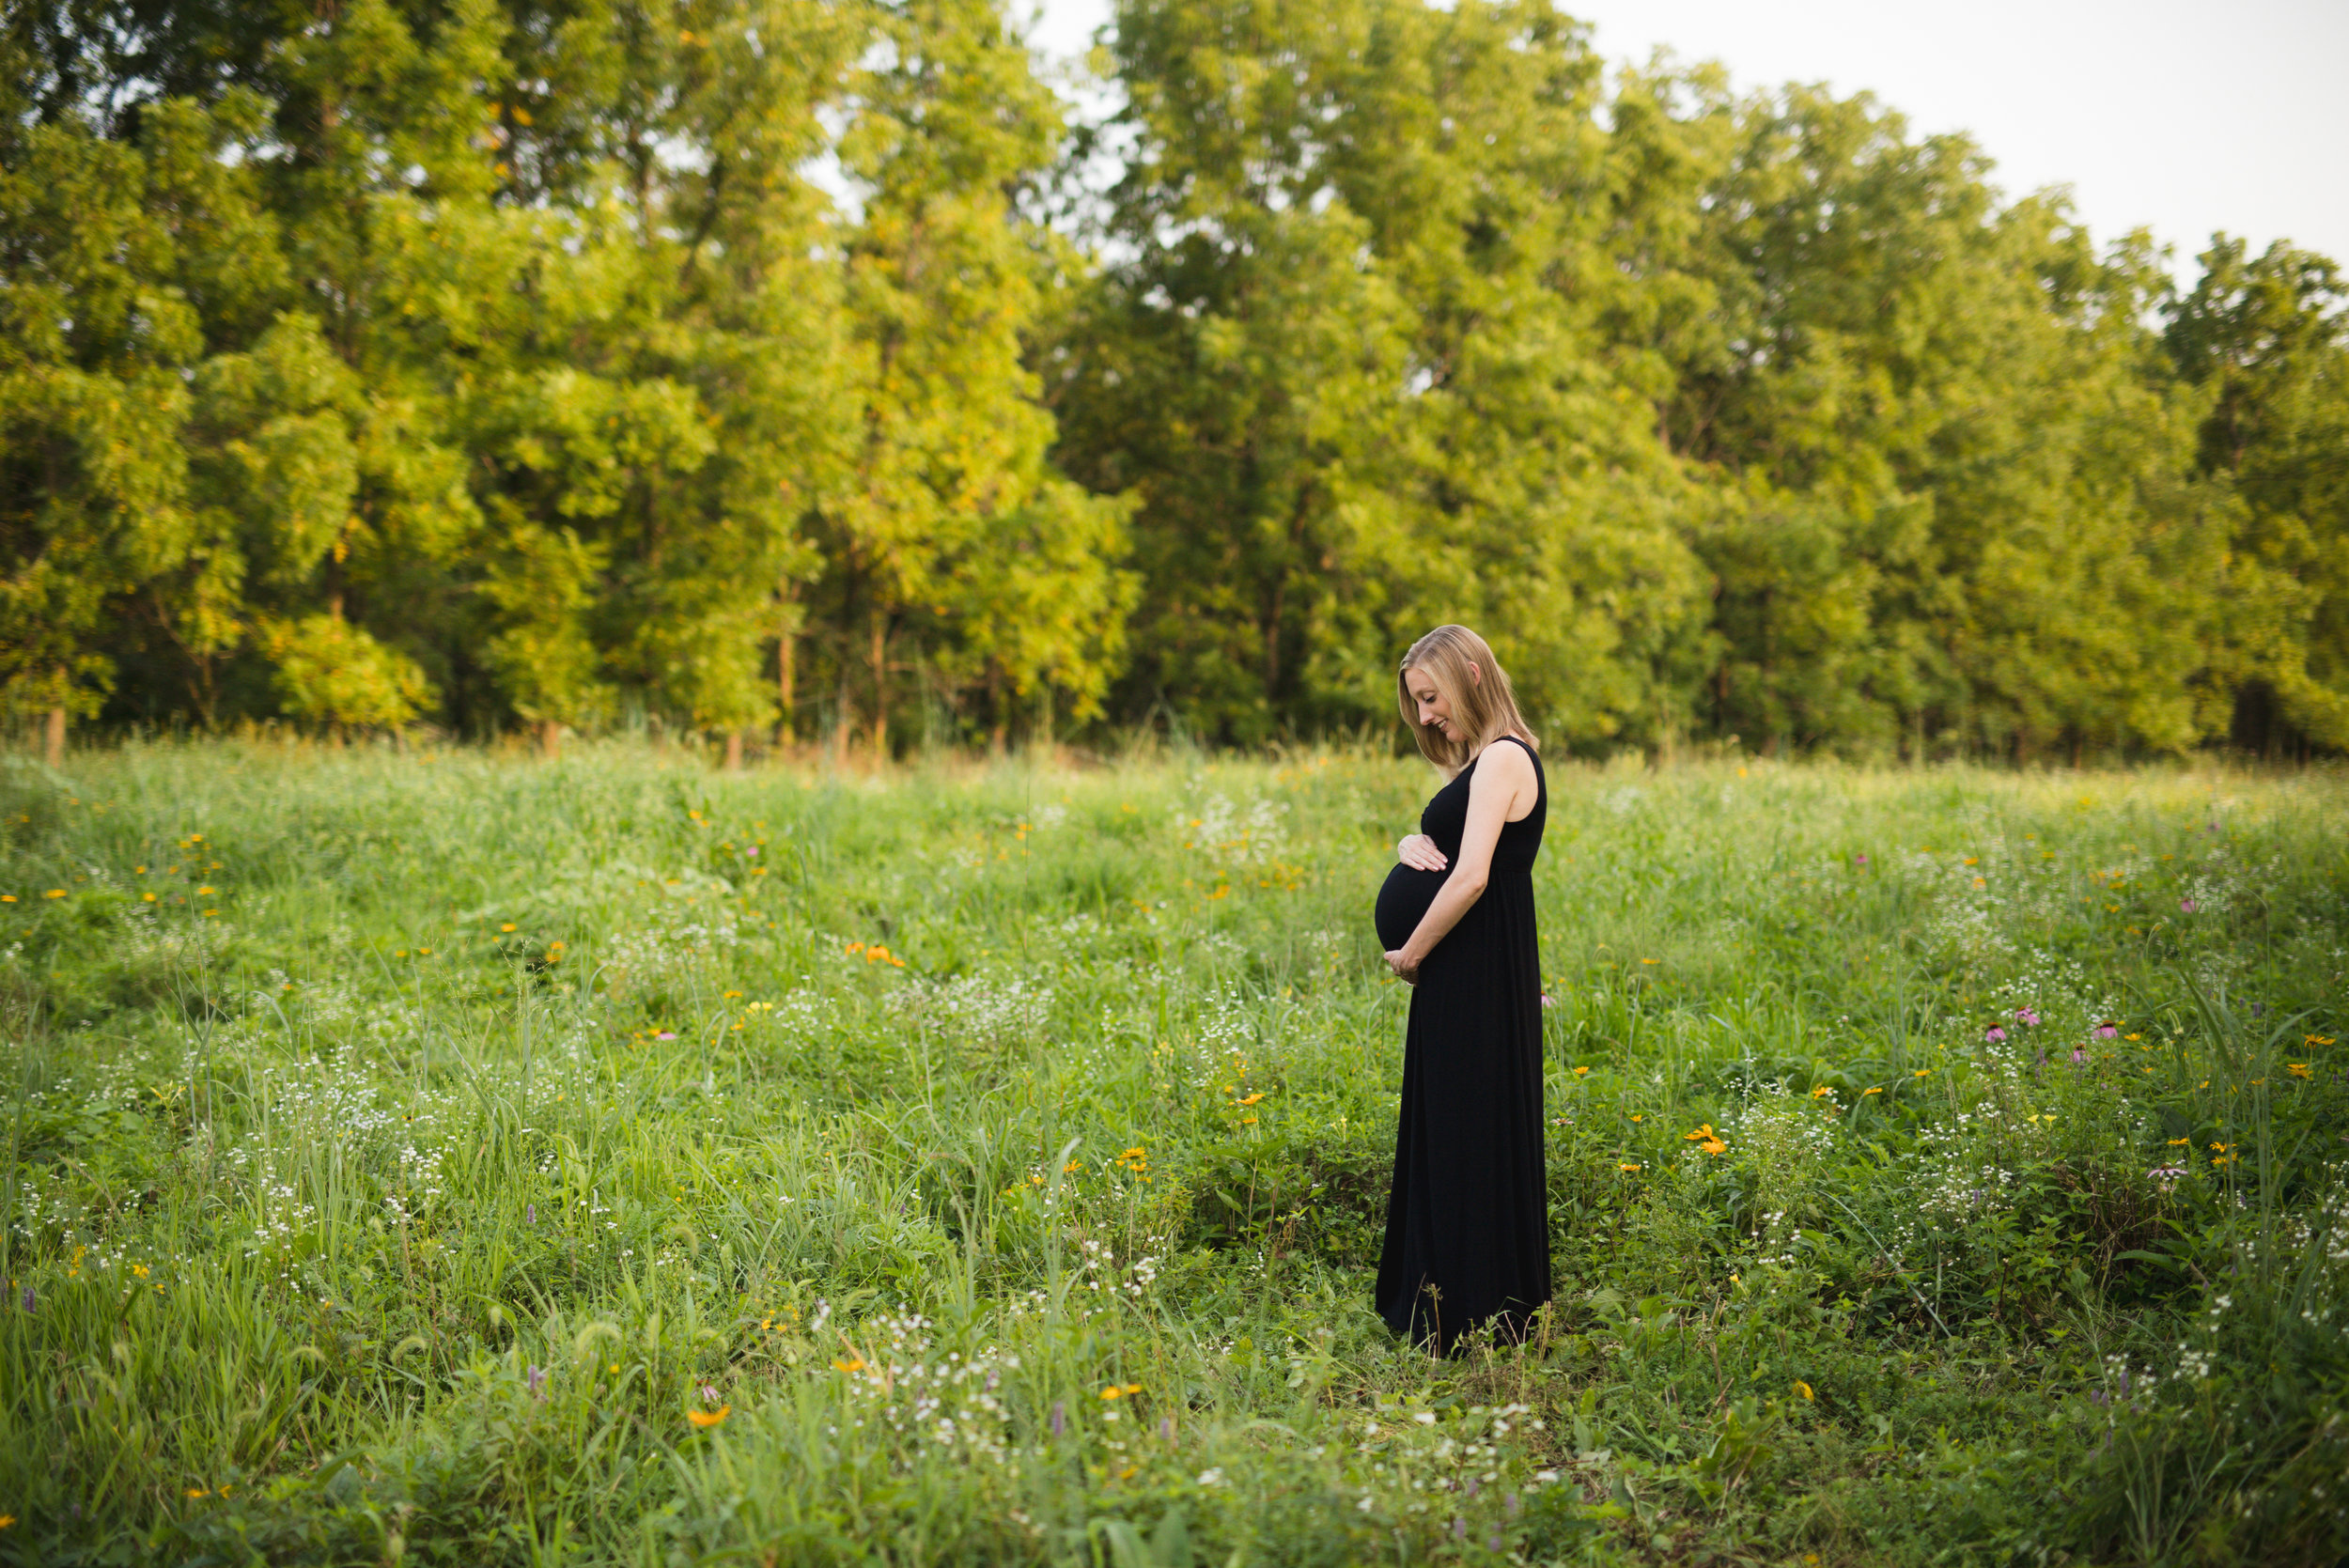 Mother-to-be with twins at 30 weeks standing in a field at Squaw Creek Park in Marion, Iowa.